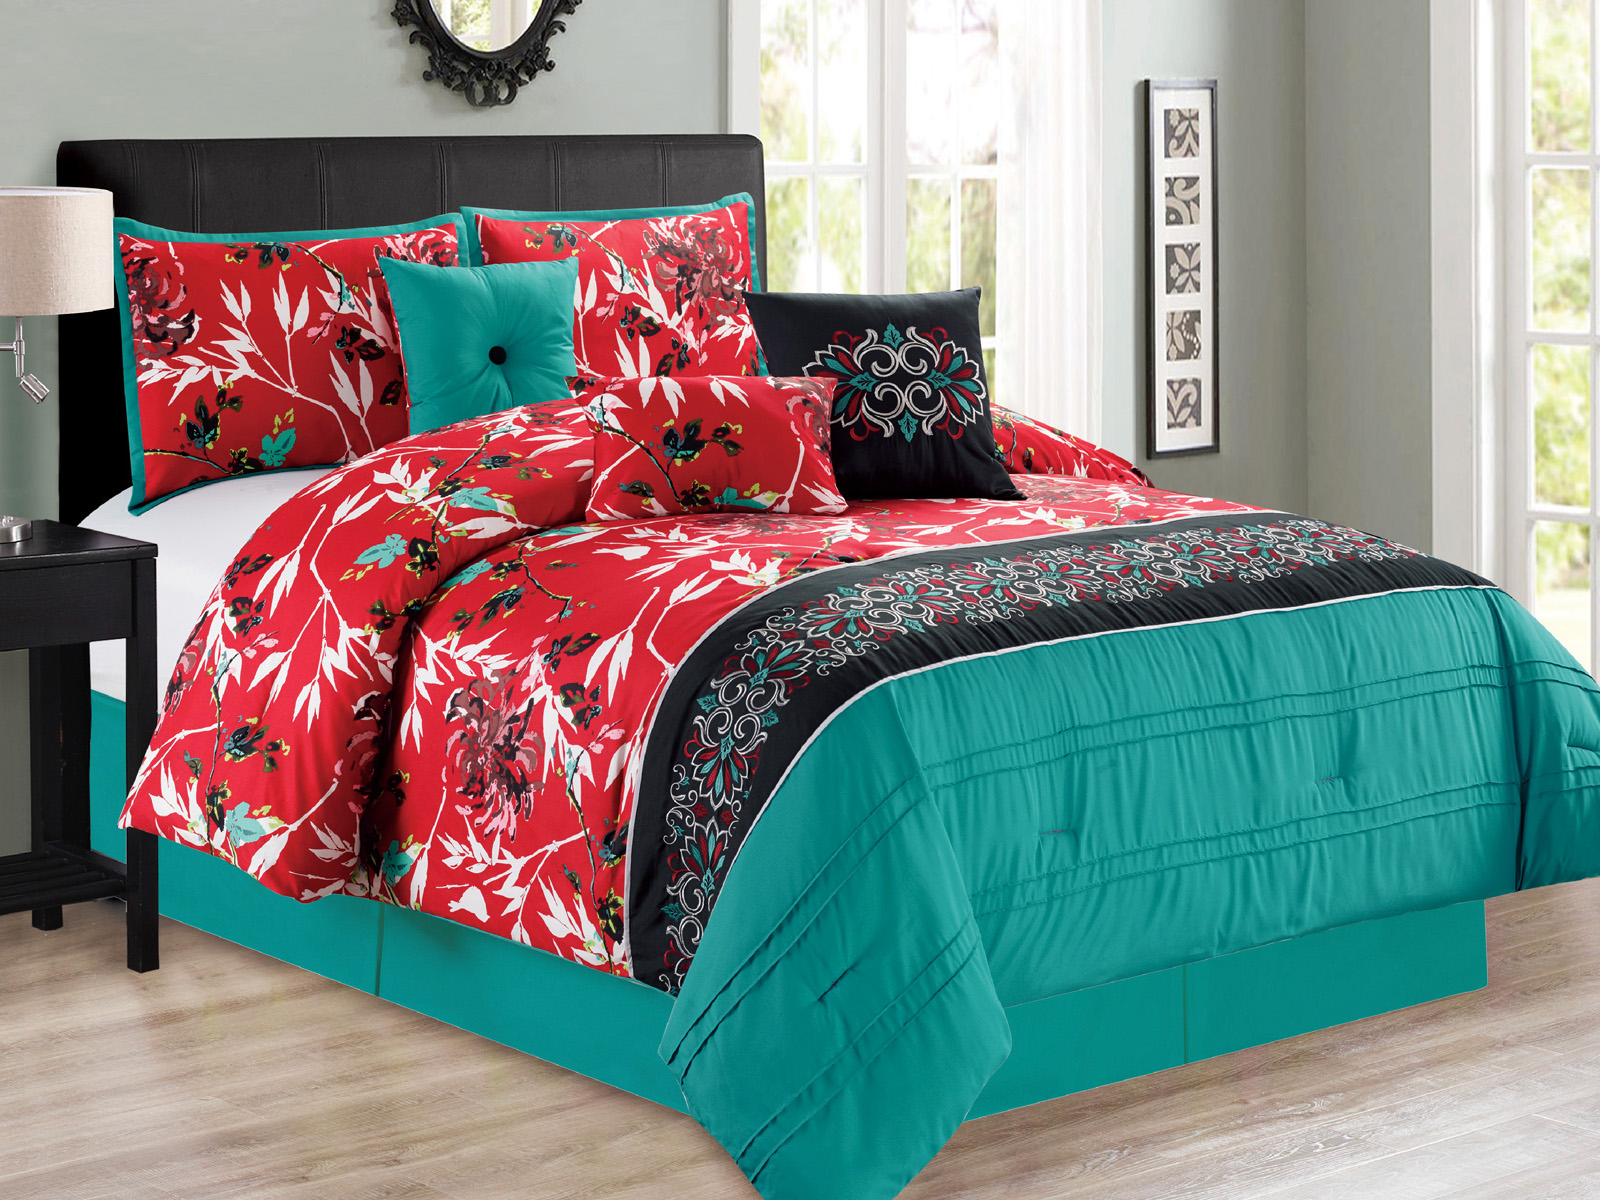 Details about 7-P Sachi Branches Silhouette Leaf Bird Floral Comforter Set  Turquoise Red Queen